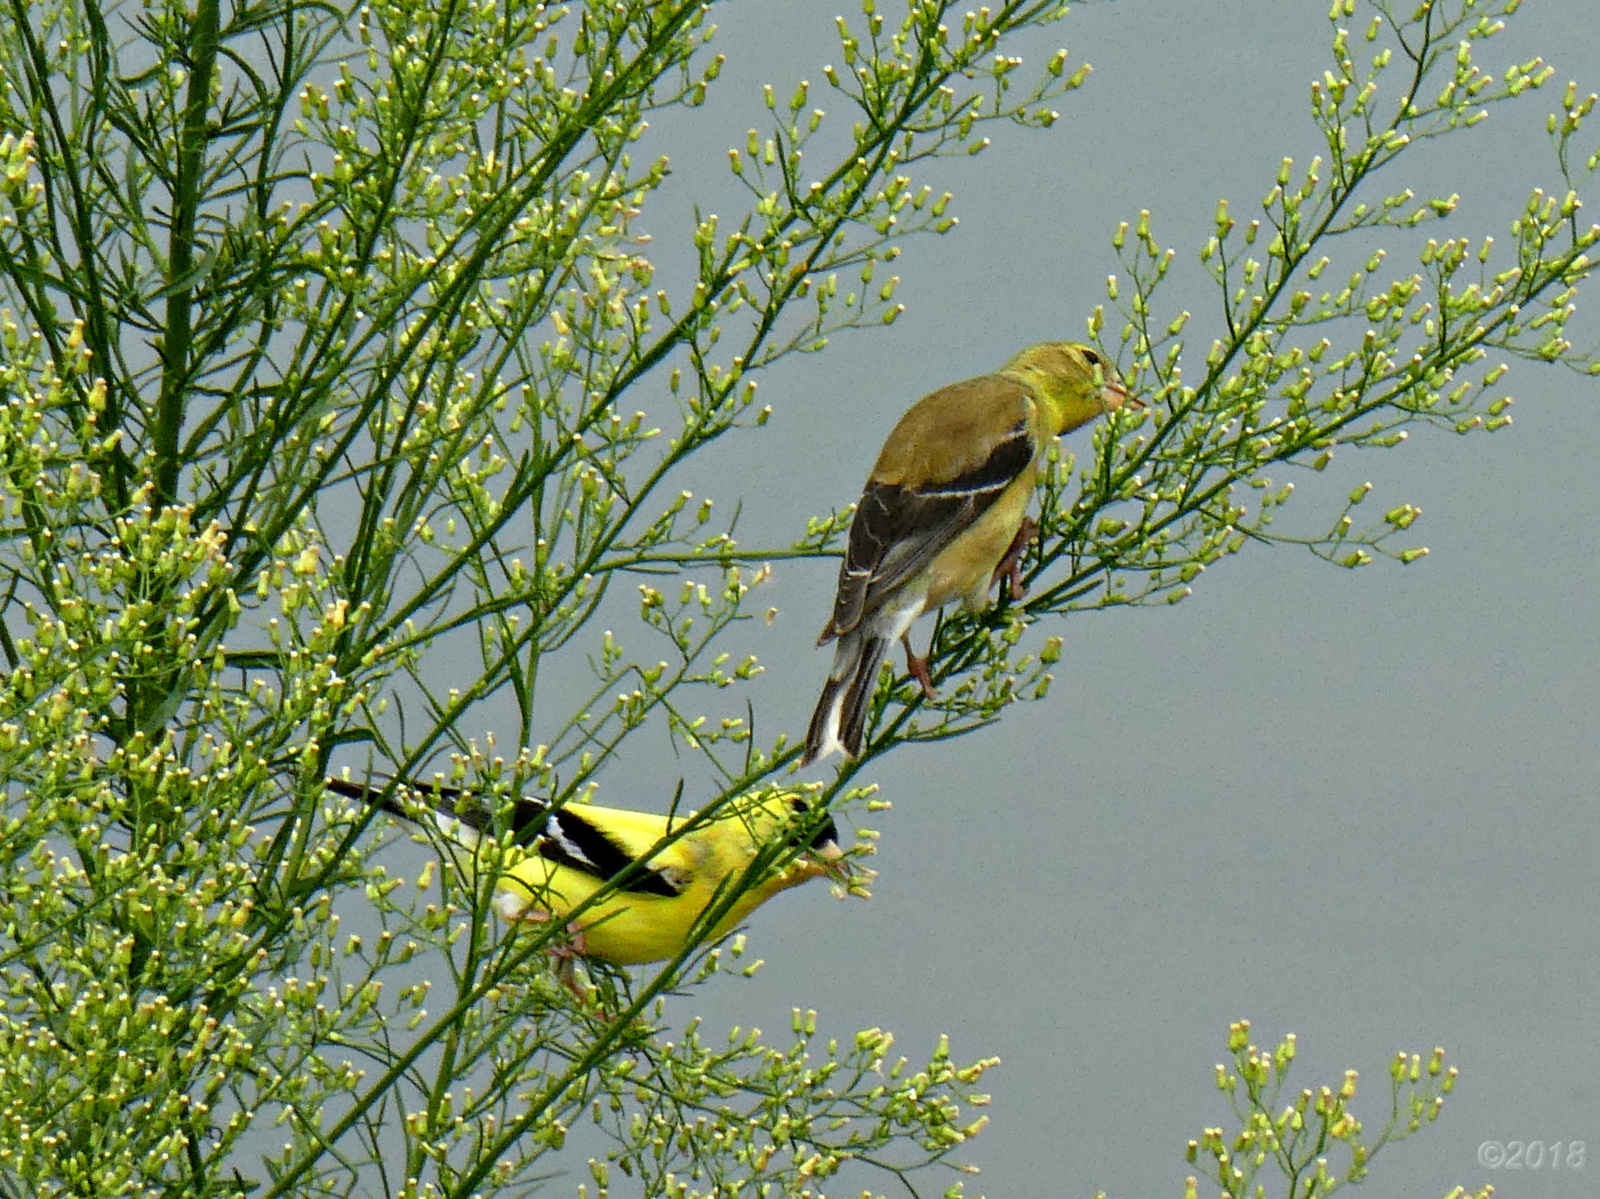 July 27, 2018 - Goldfinches at the Lake Tamarack Dam in Bent Tree